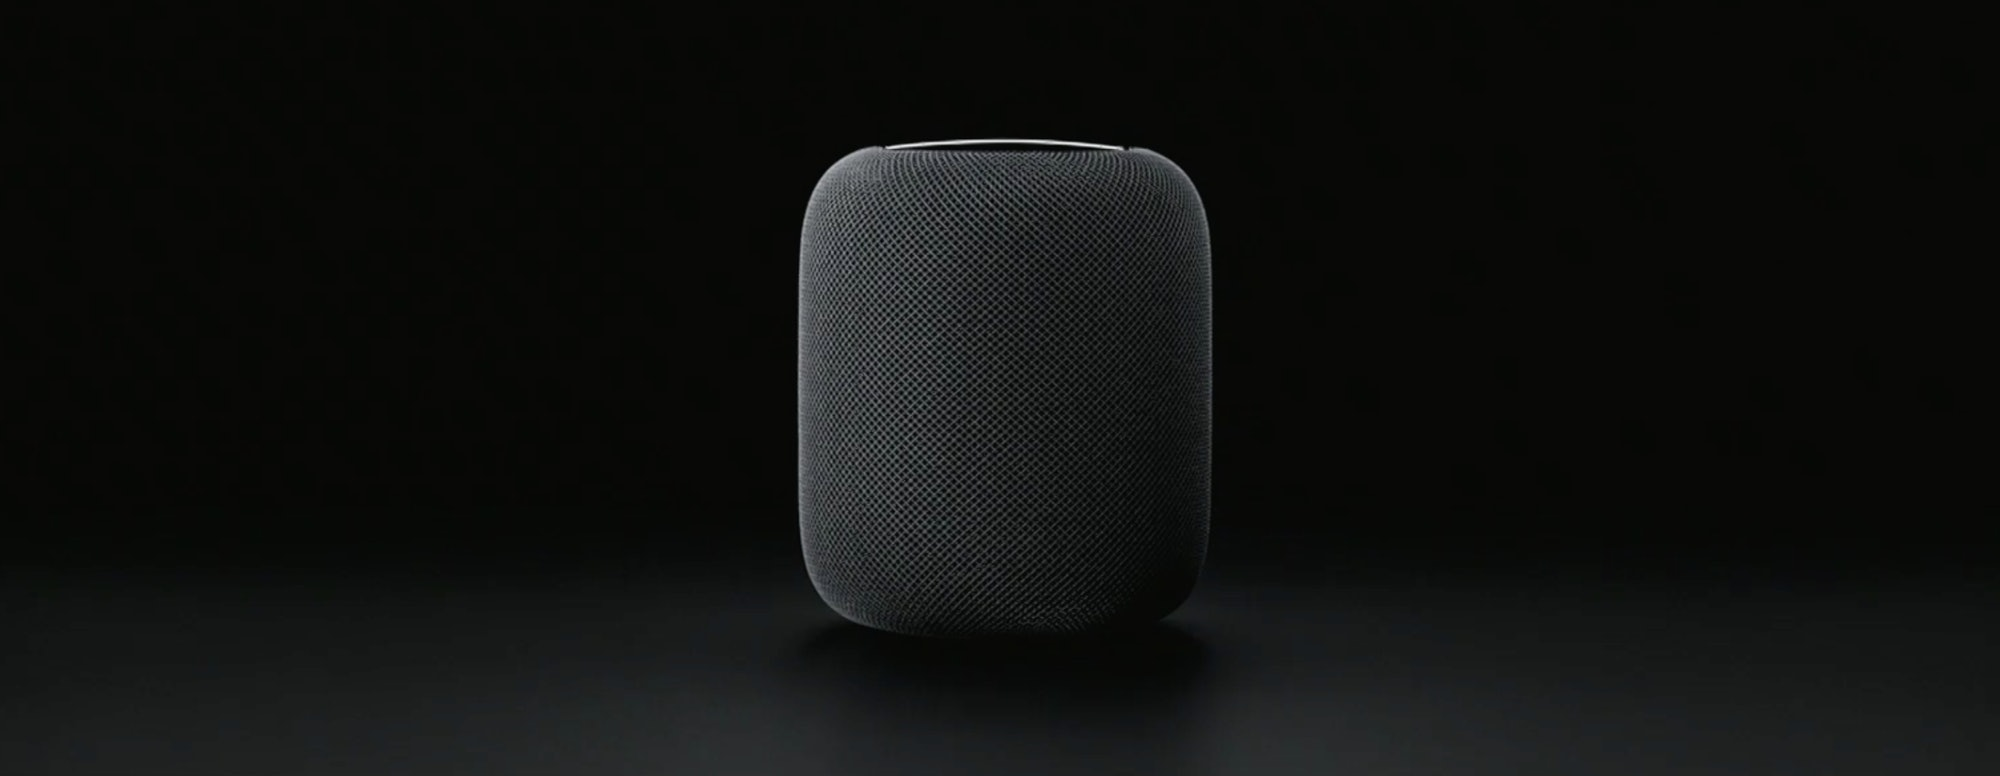 HomePod in black.